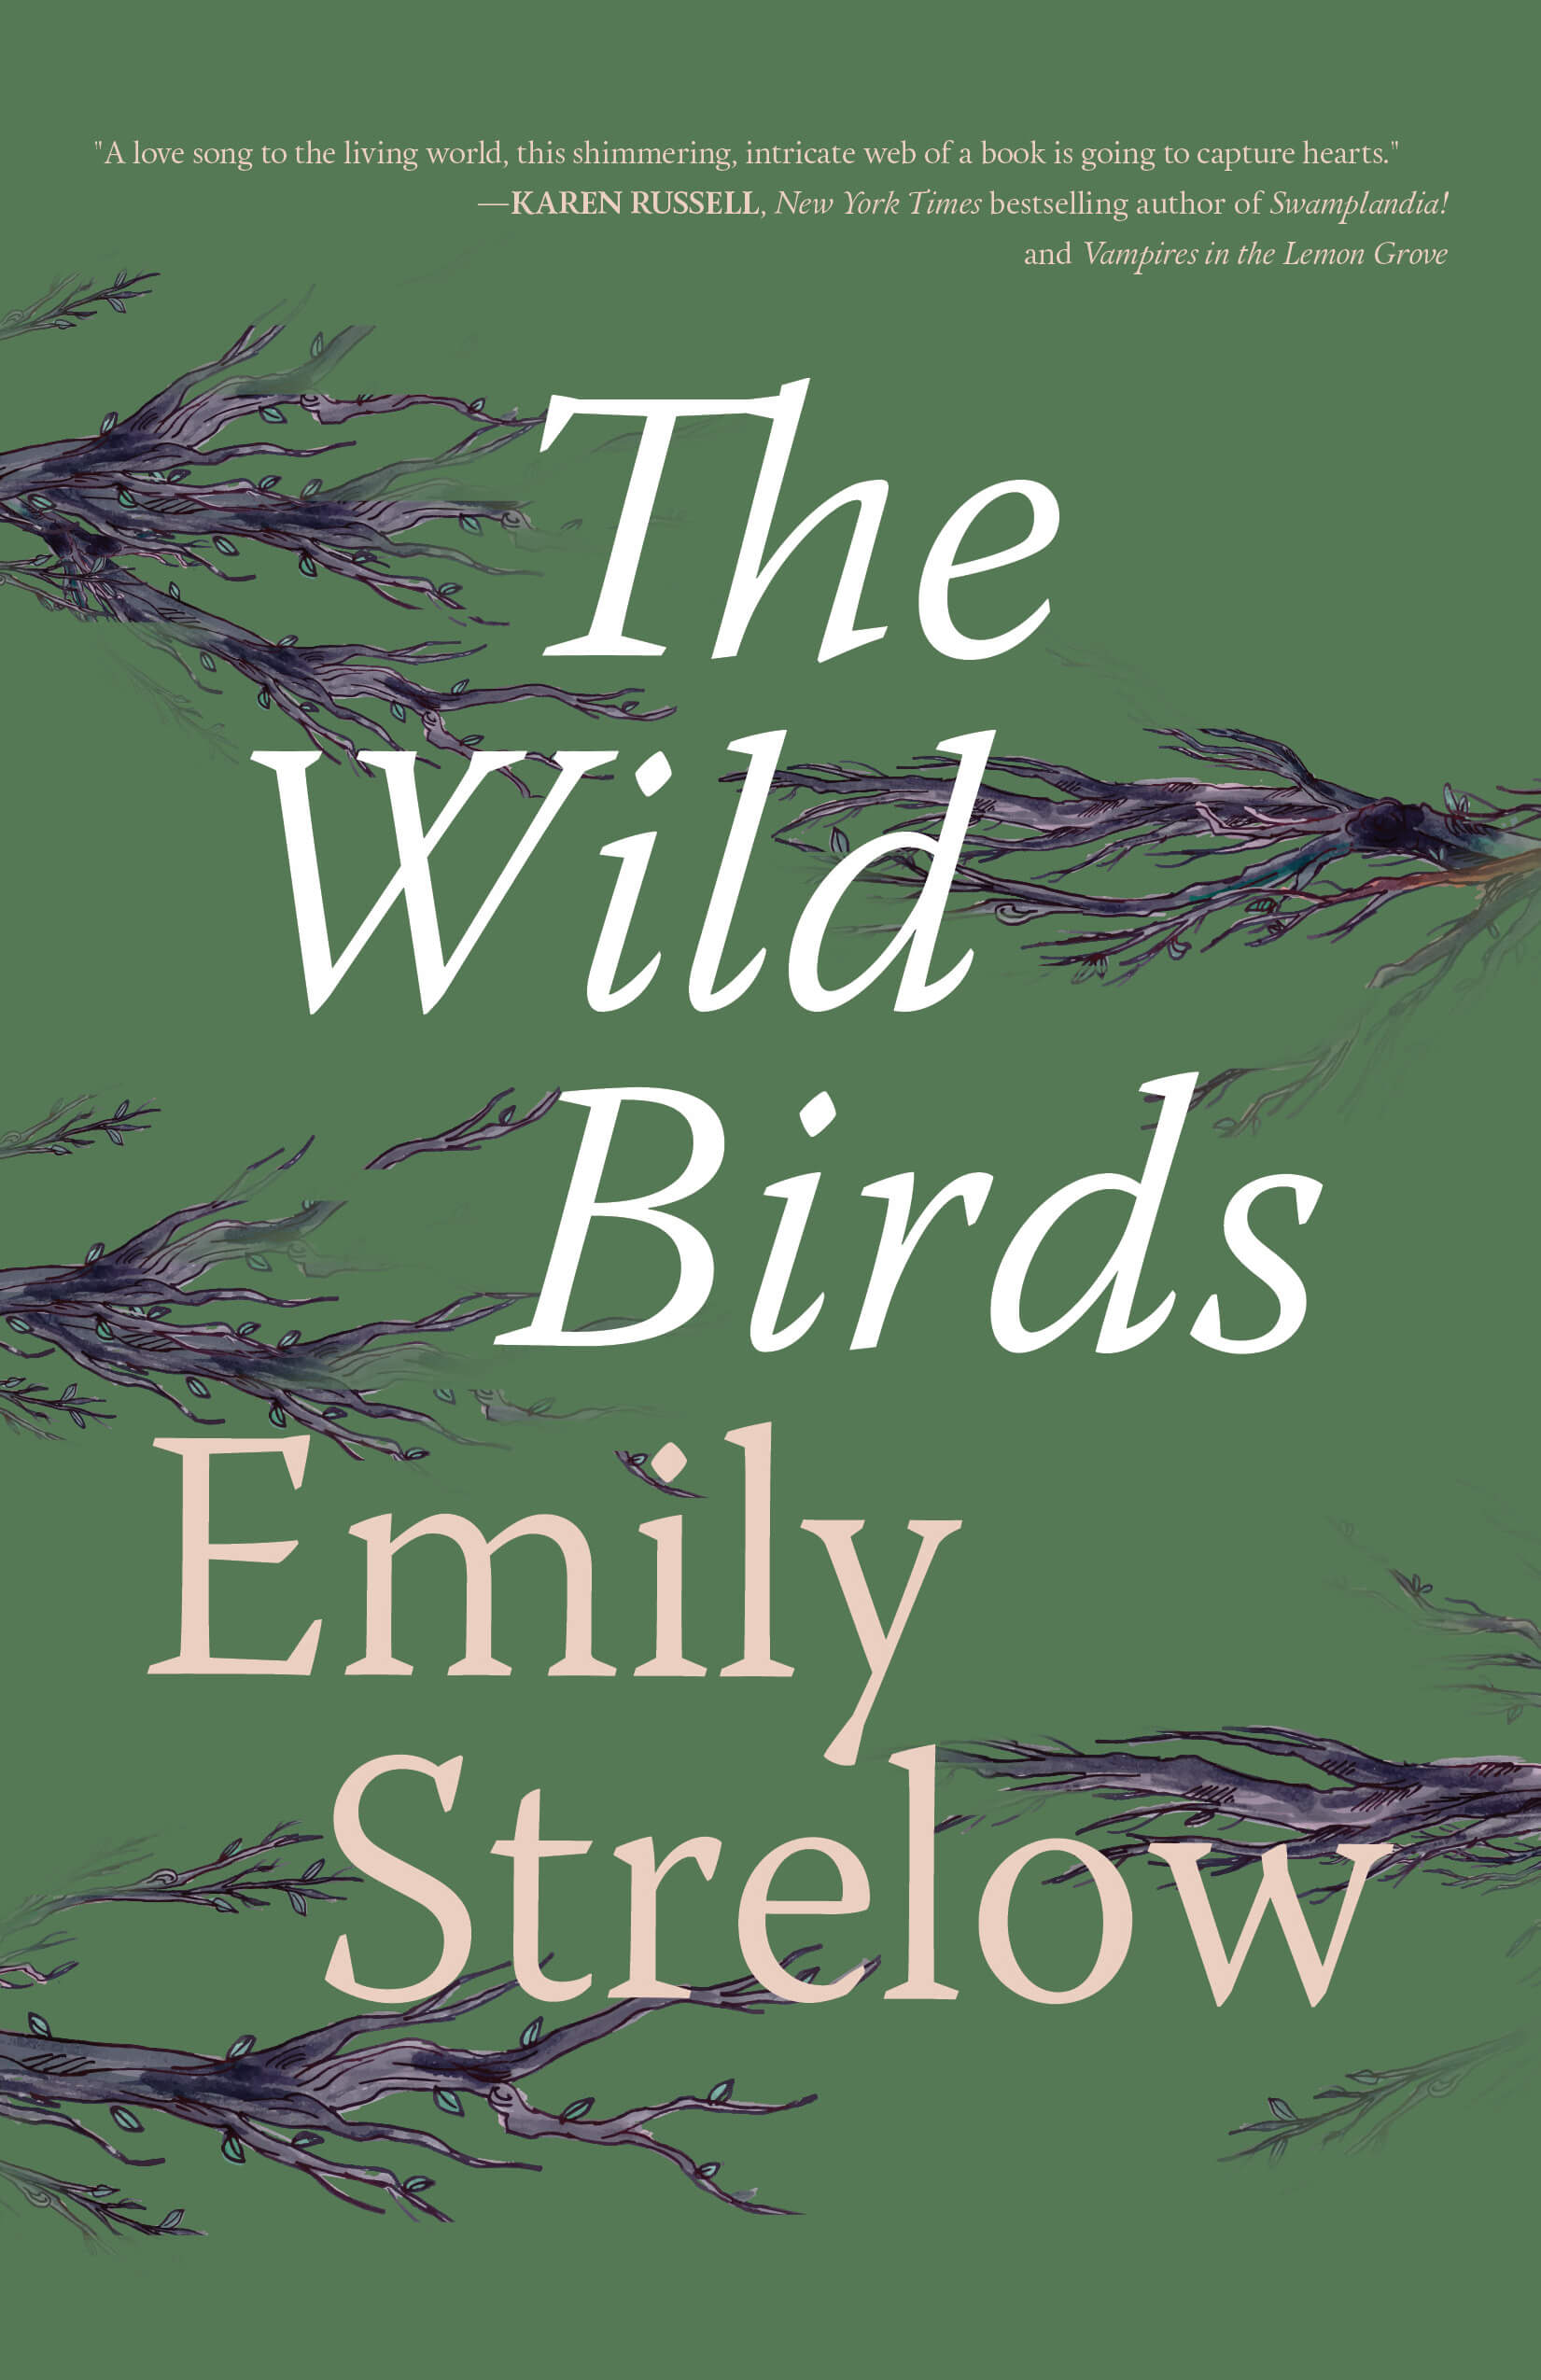 The Wild Birds book cover by Emily Strelow